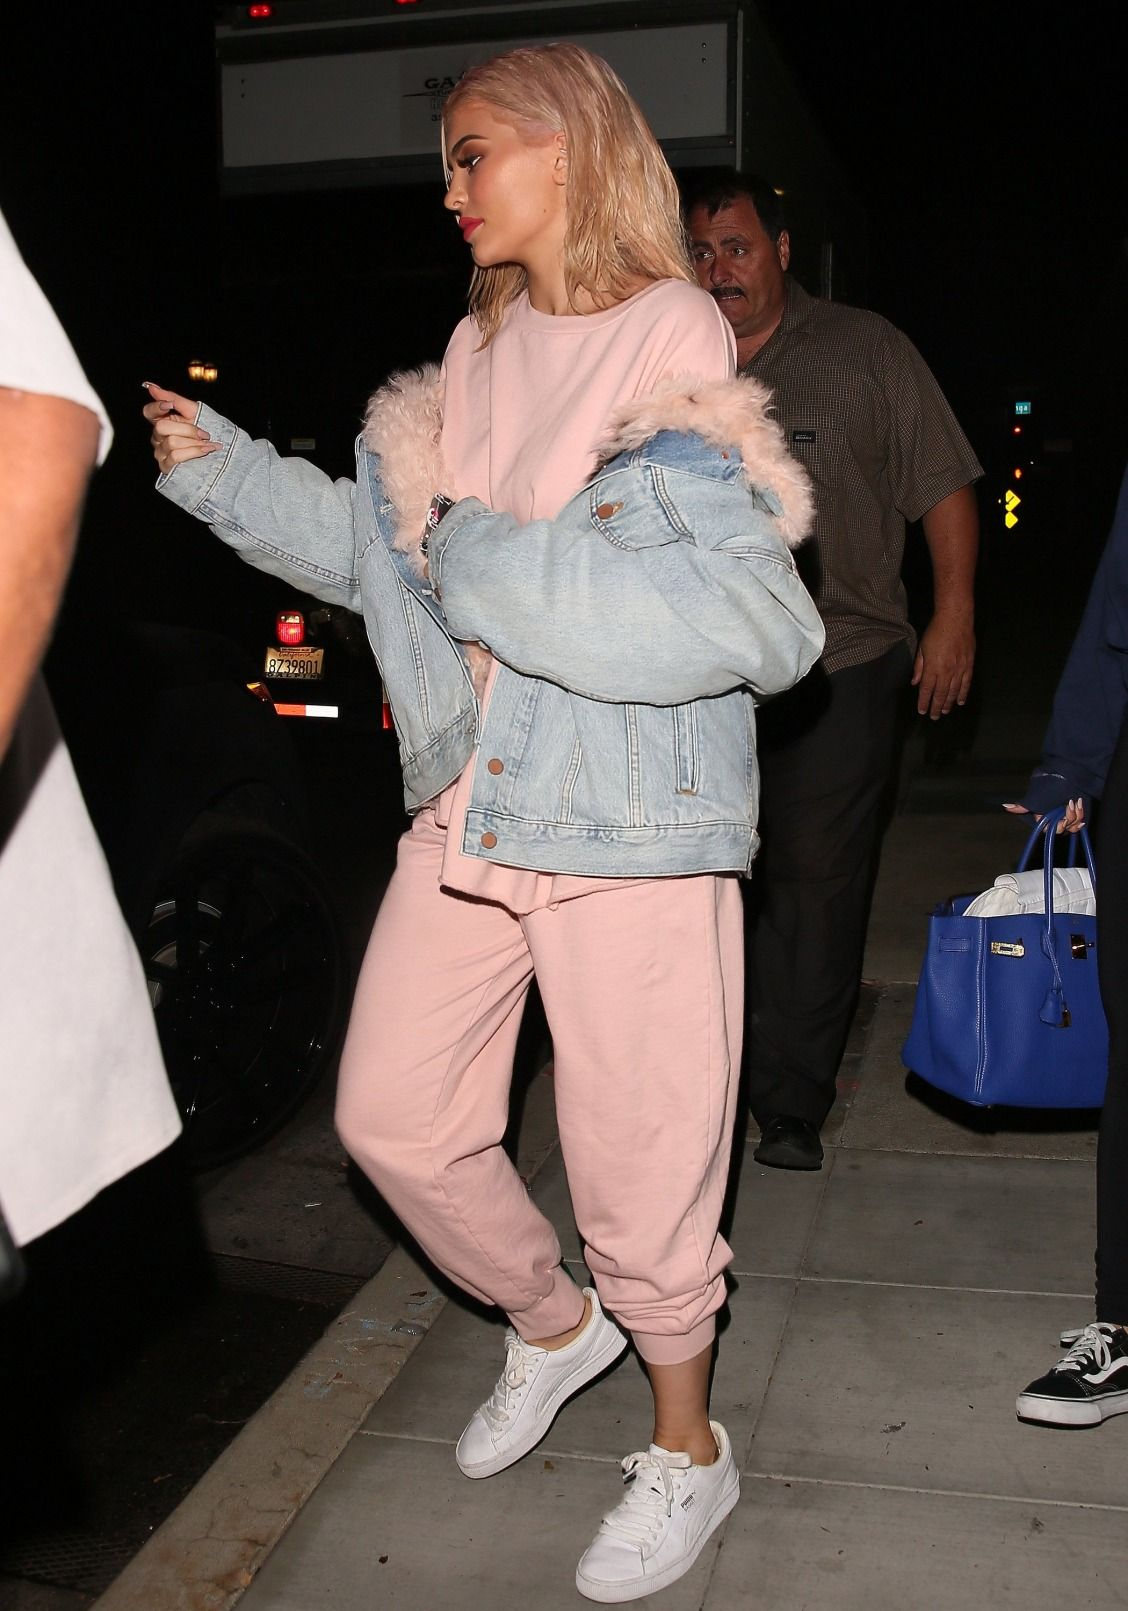 Is Pink the New Black? Kendall, Gigi, and More Warm Up to Winter Pastels. Kylie  Jenner ...